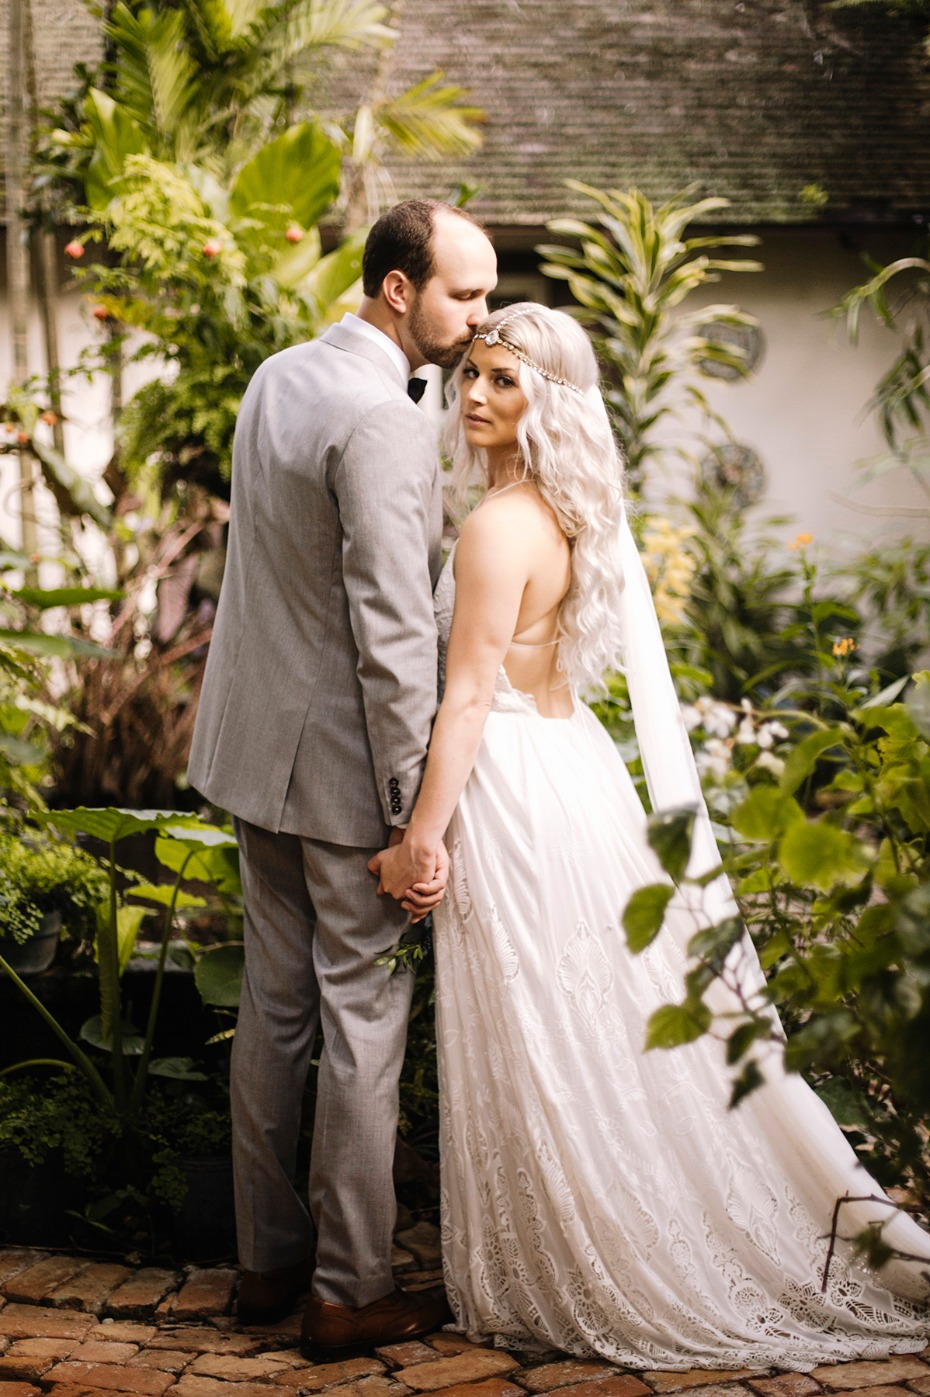 we seriously want to steal this brides amazing style